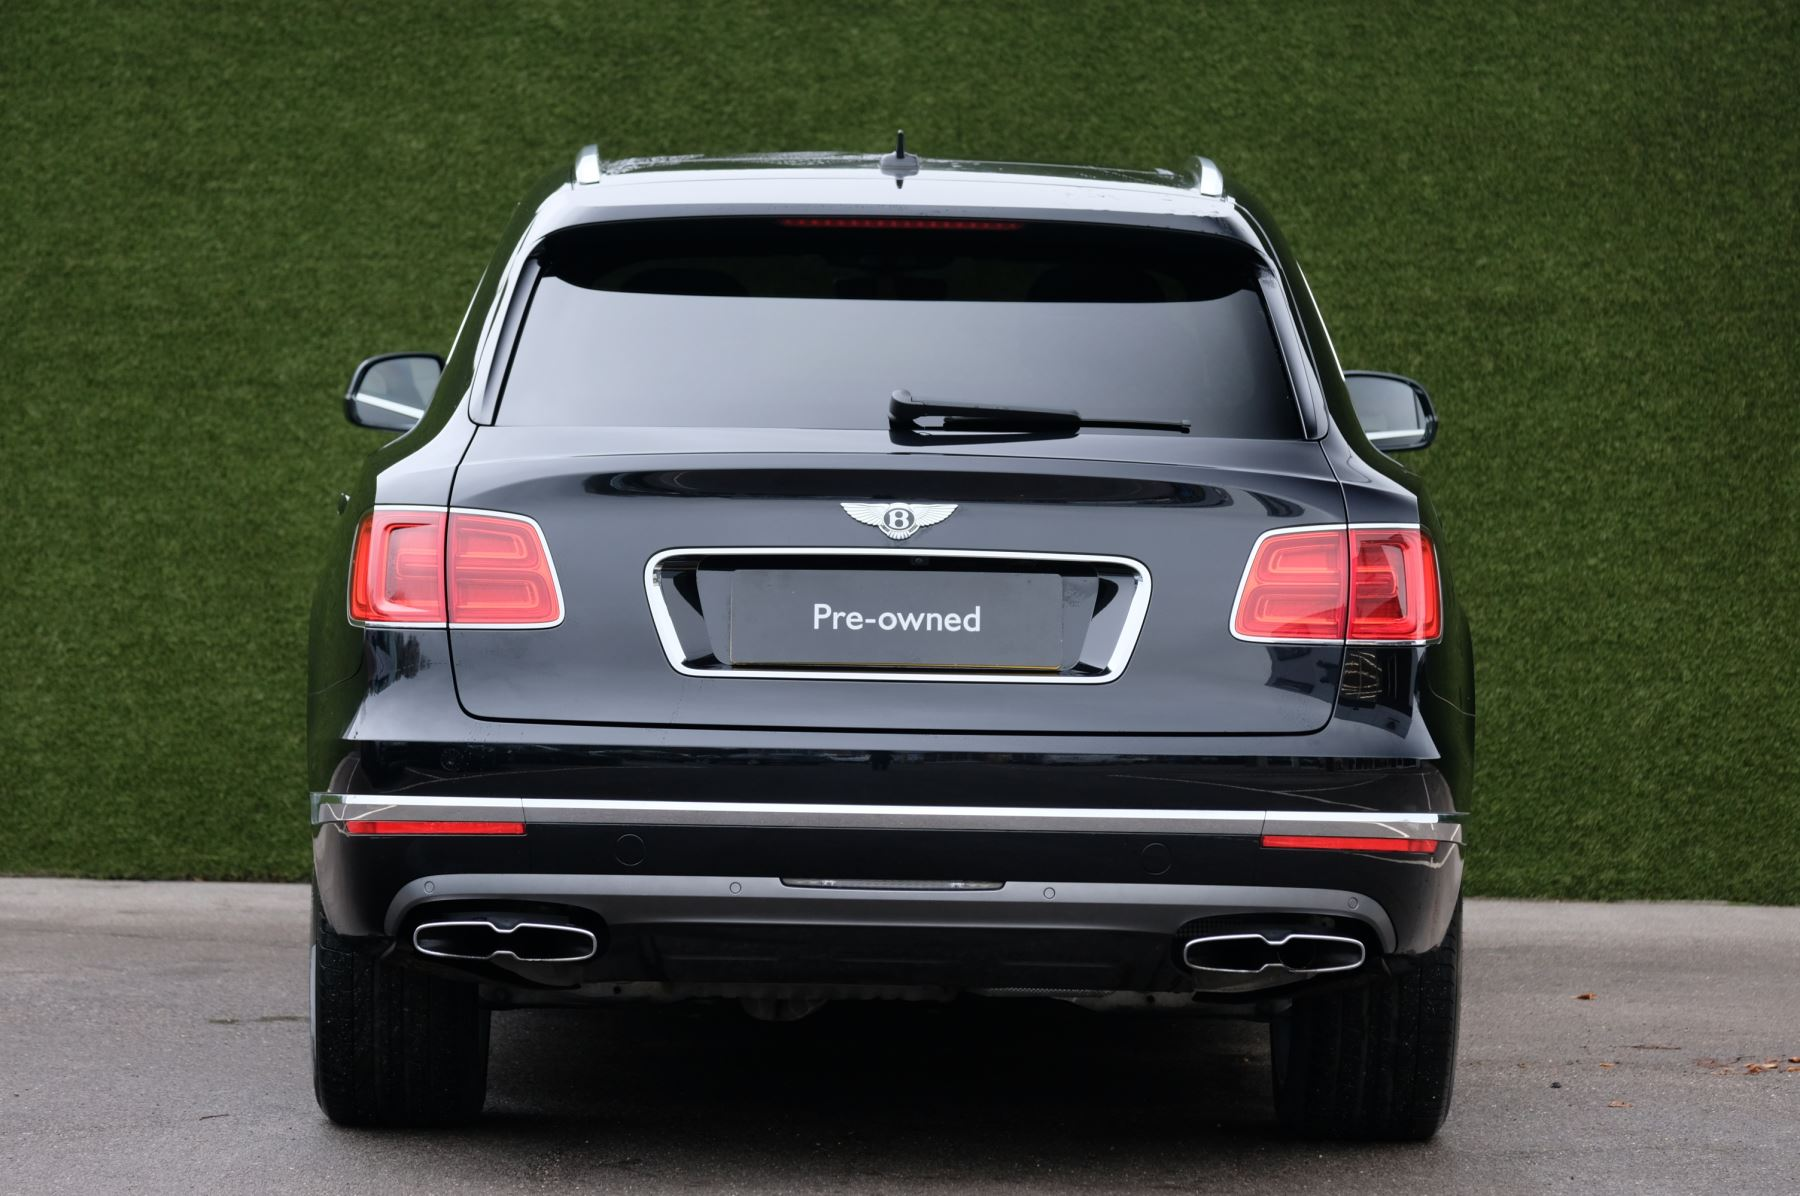 Bentley Bentayga Diesel 4.0 V8 Mulliner Driving Spec 5dr Auto - 7 Seat Specification image 4